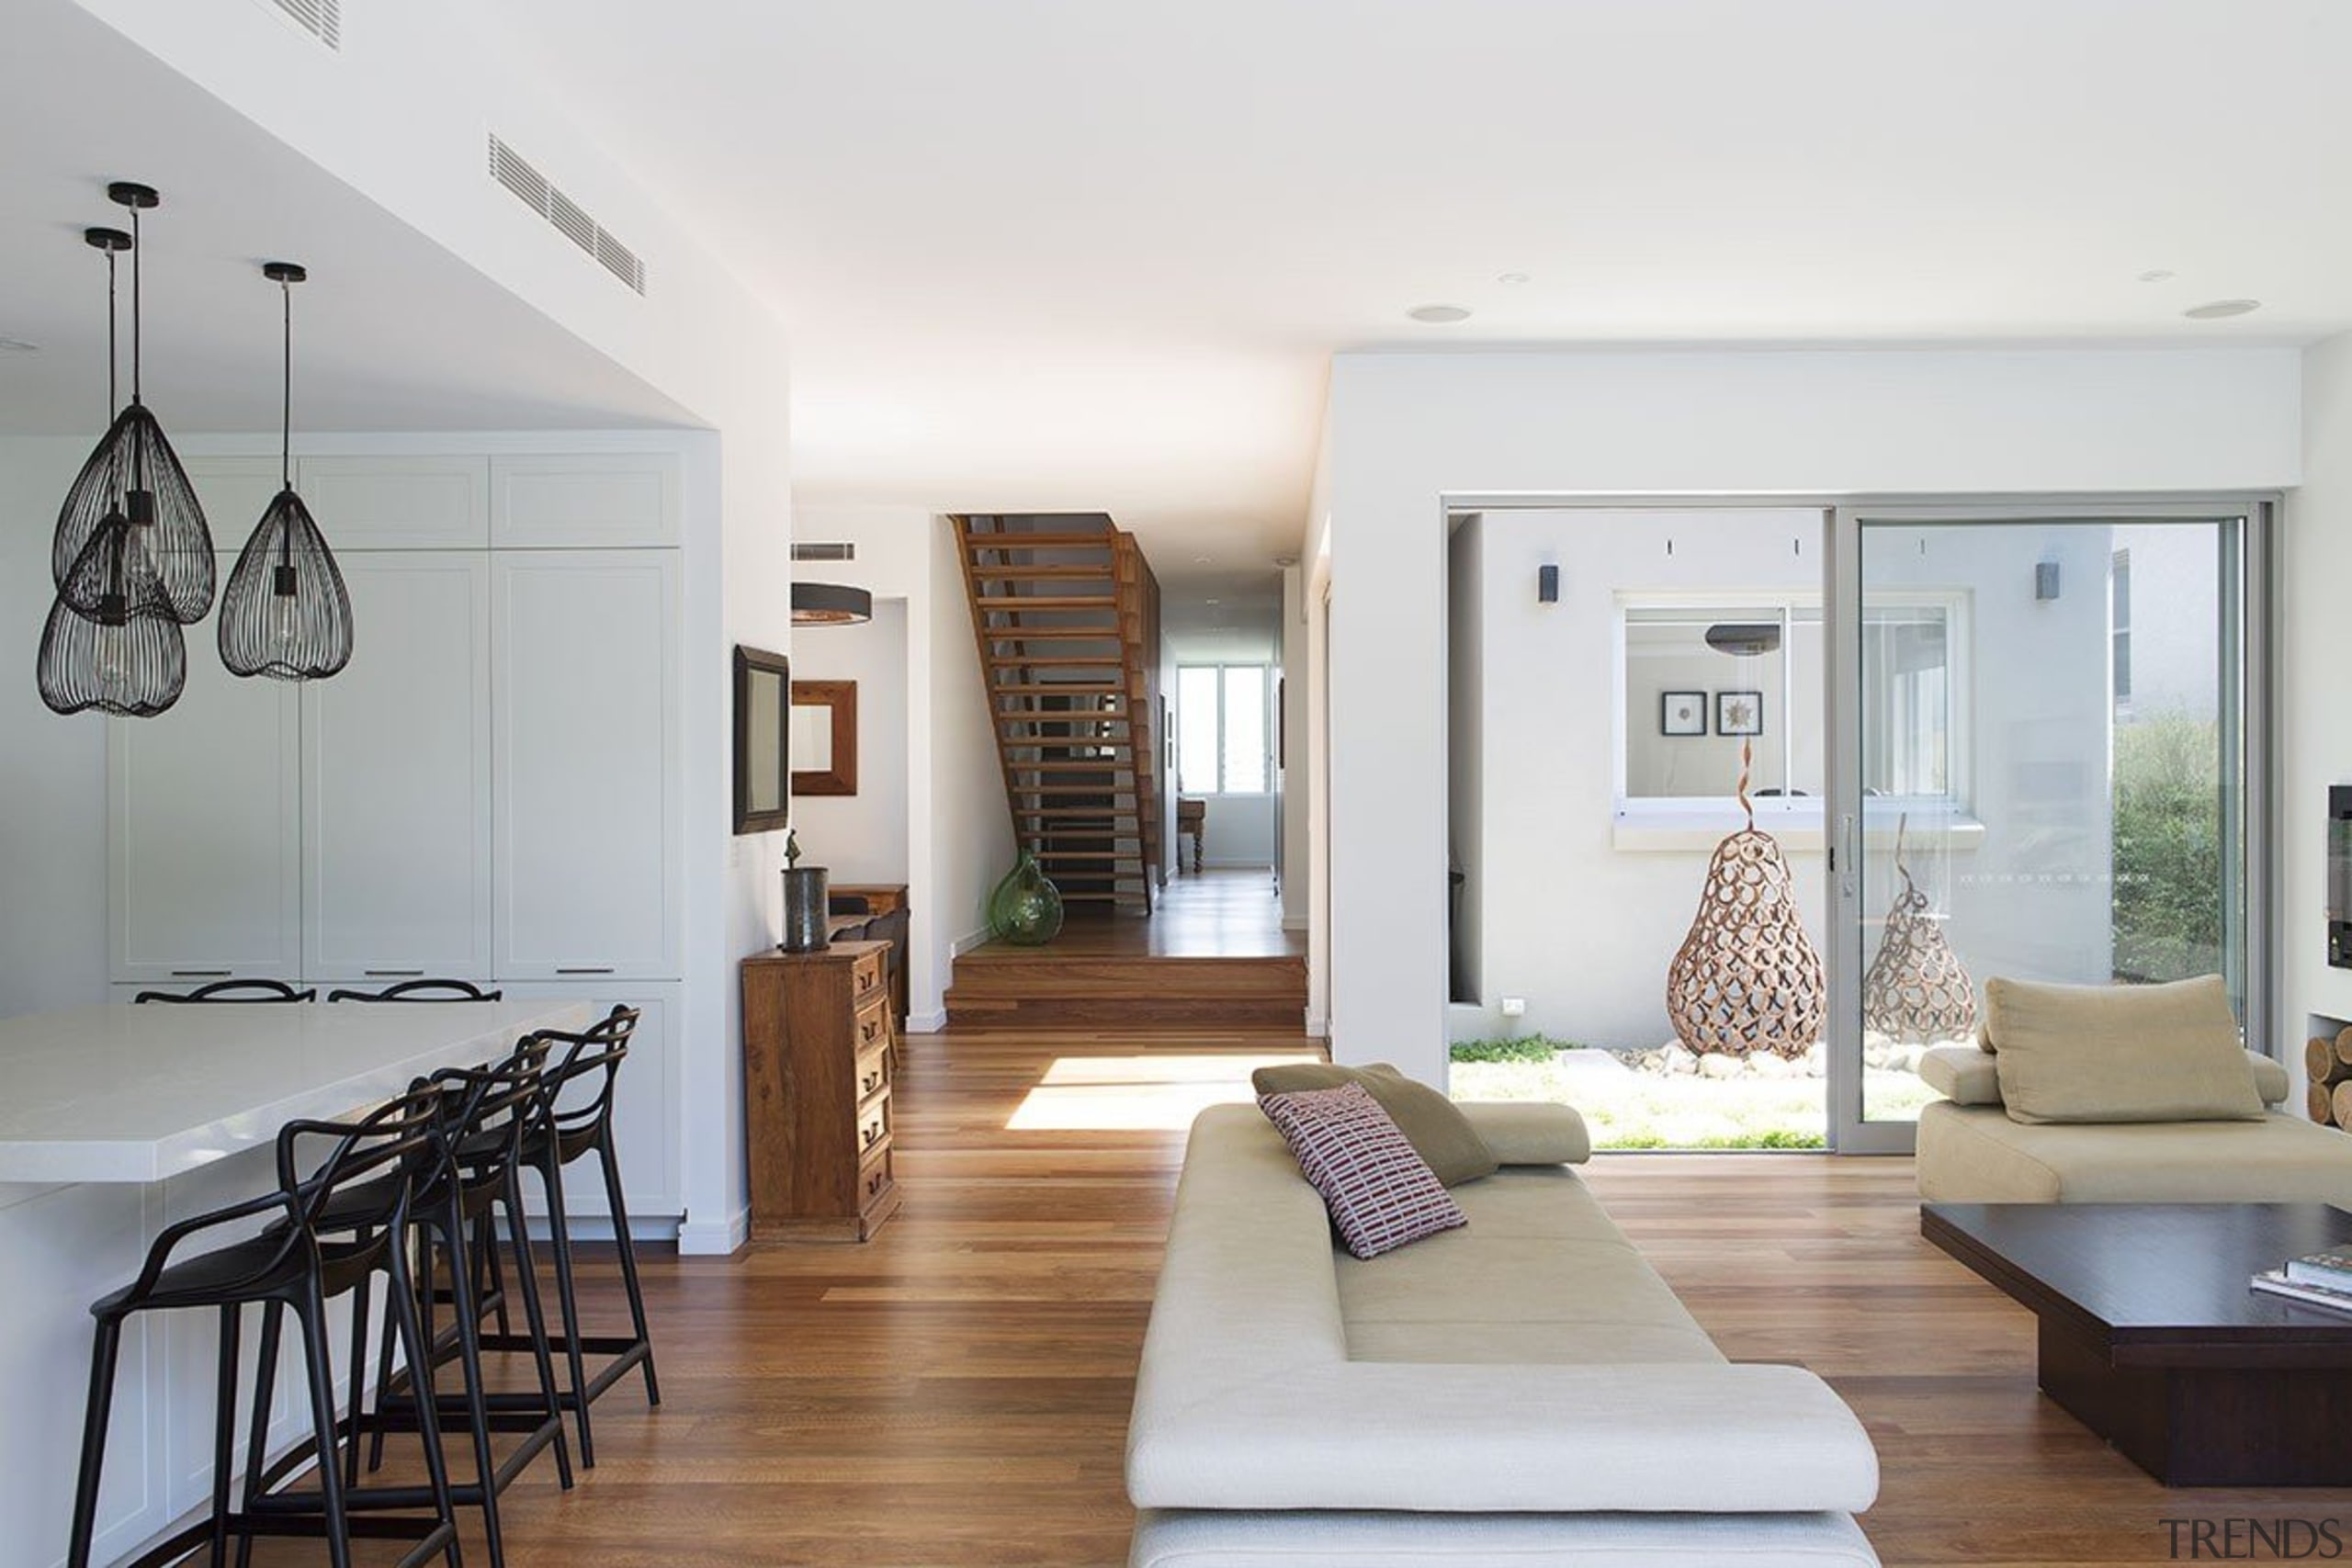 IL Design, SydneySee more from of this architecture, ceiling, home, house, interior design, living room, real estate, room, gray, white